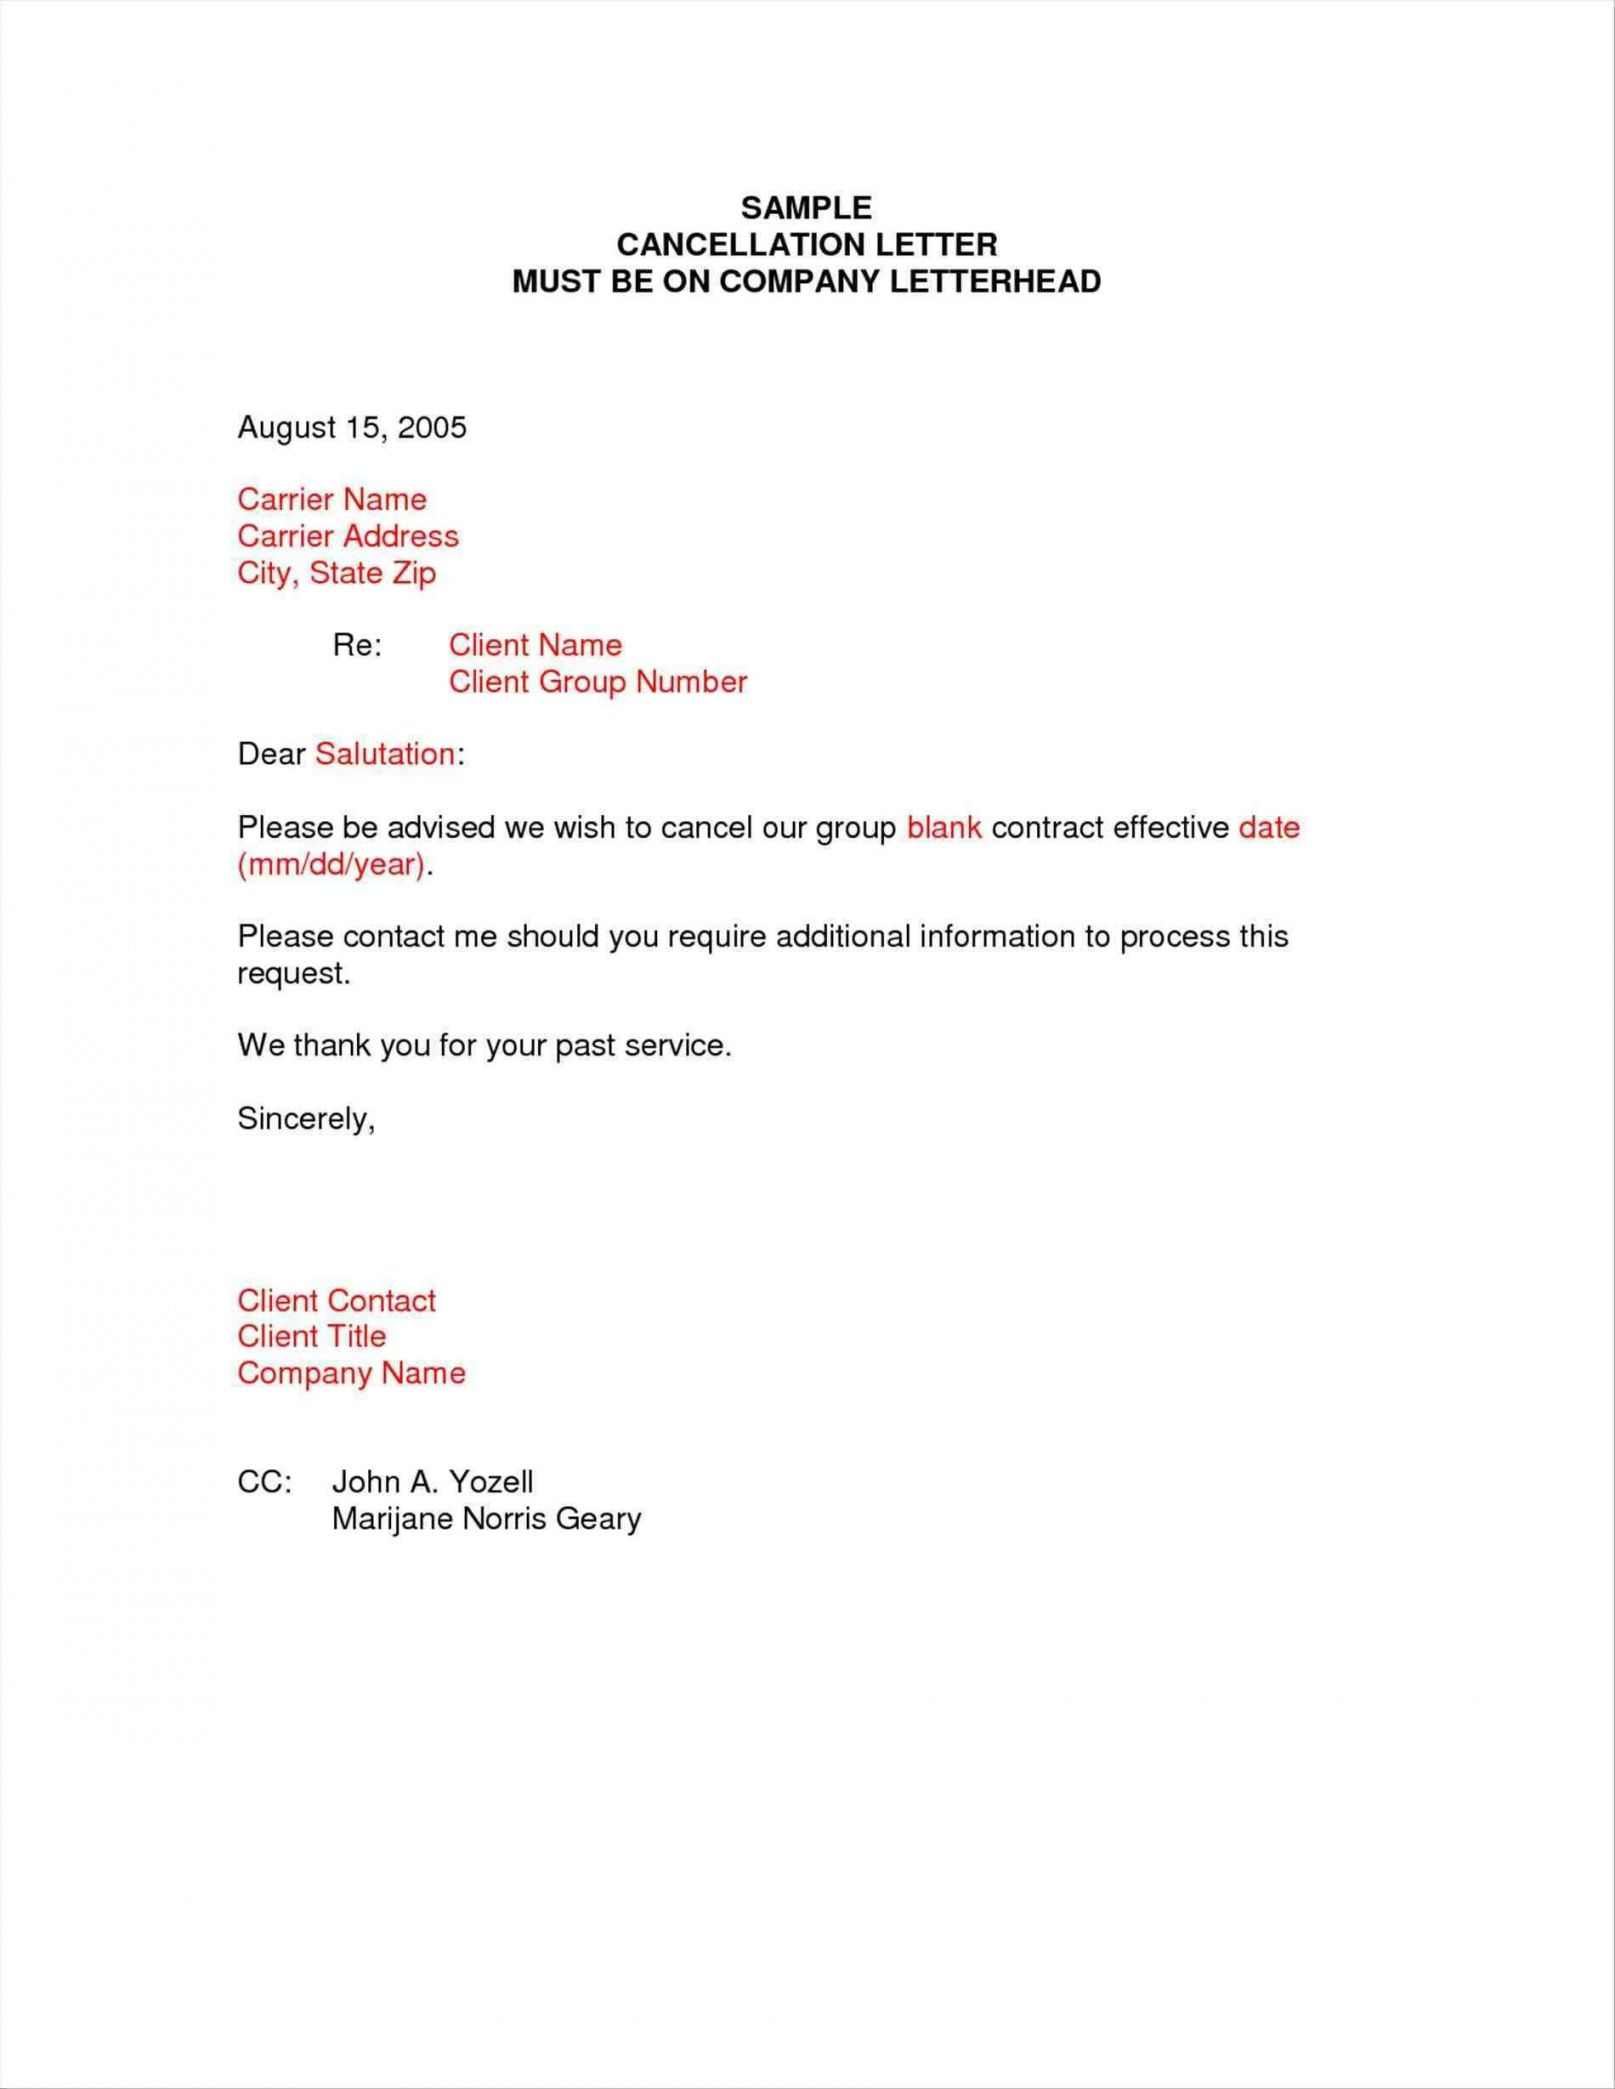 Gym Membership Cancellation Letter Examples : membership, cancellation, letter, examples, Explore, Example, Membership, Cancellation, Letter, Template, Professional, Template,, Templates, Free,, Lettering